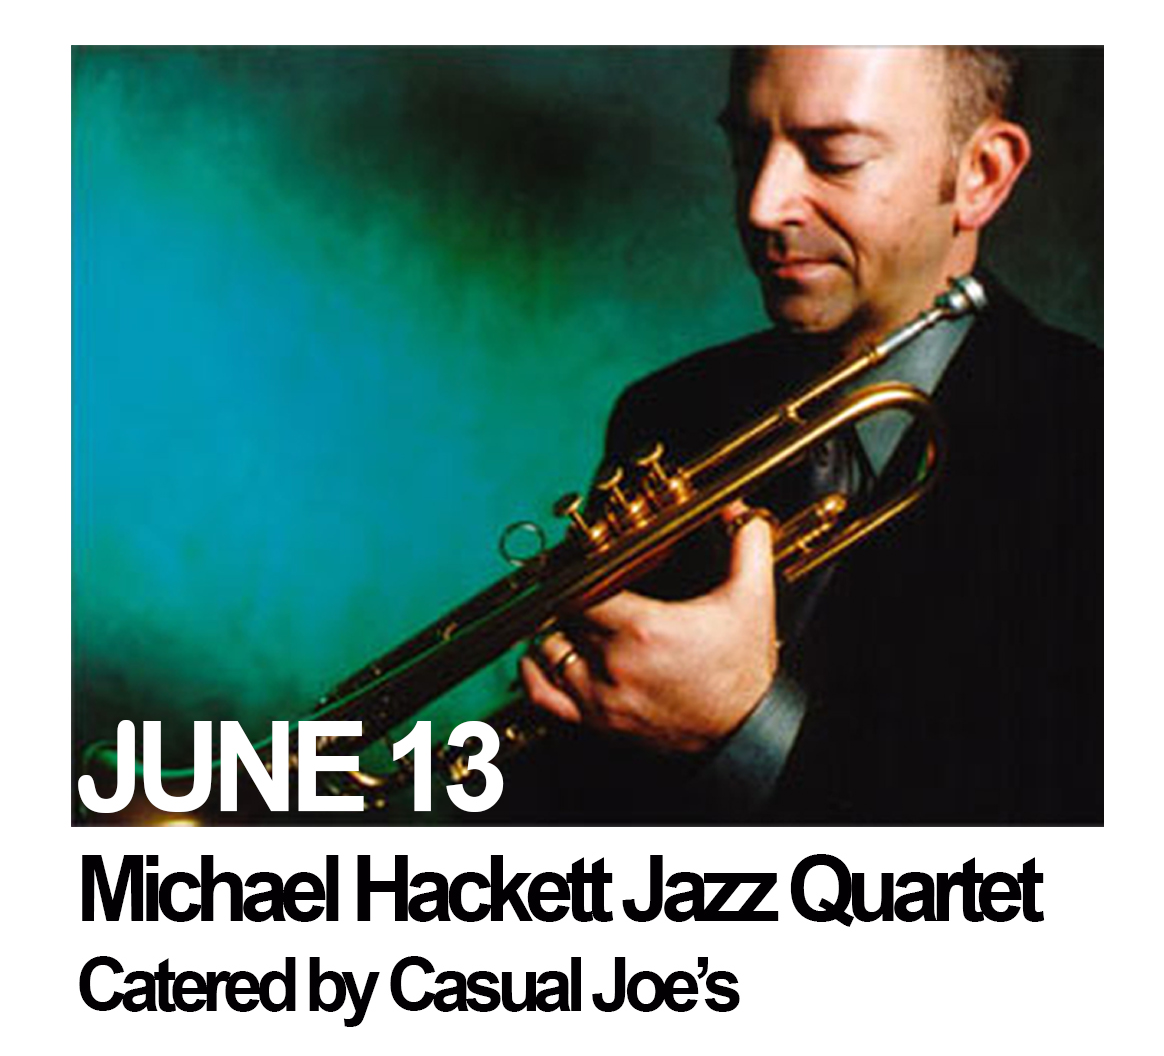 June 13: Michael Hackett Jazz Quartet with food by  Casual Joe's